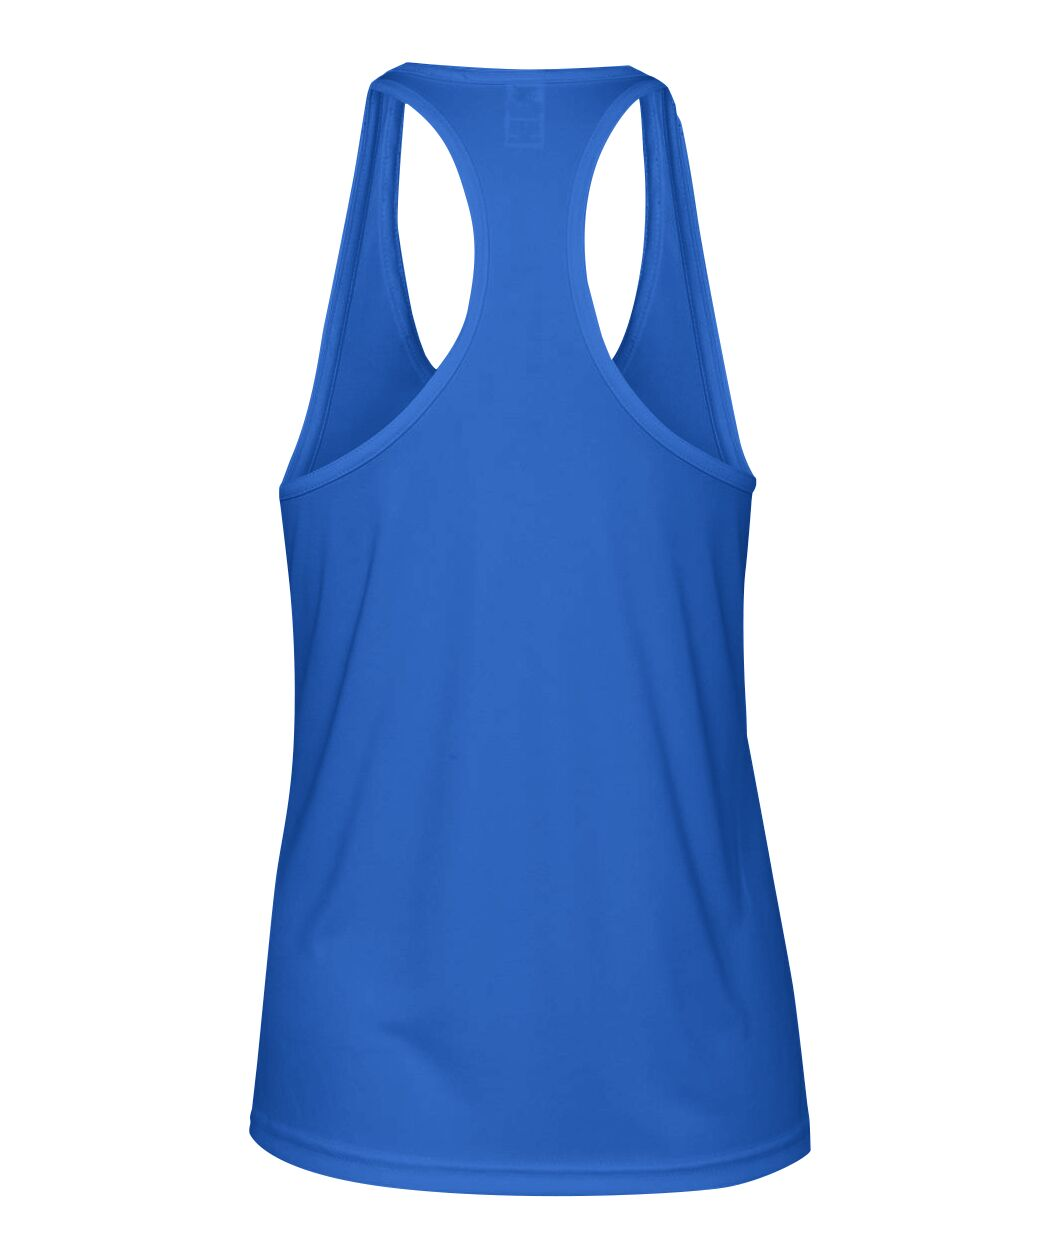 TWENTY HANDS HIGH Womens Racer Back Tank